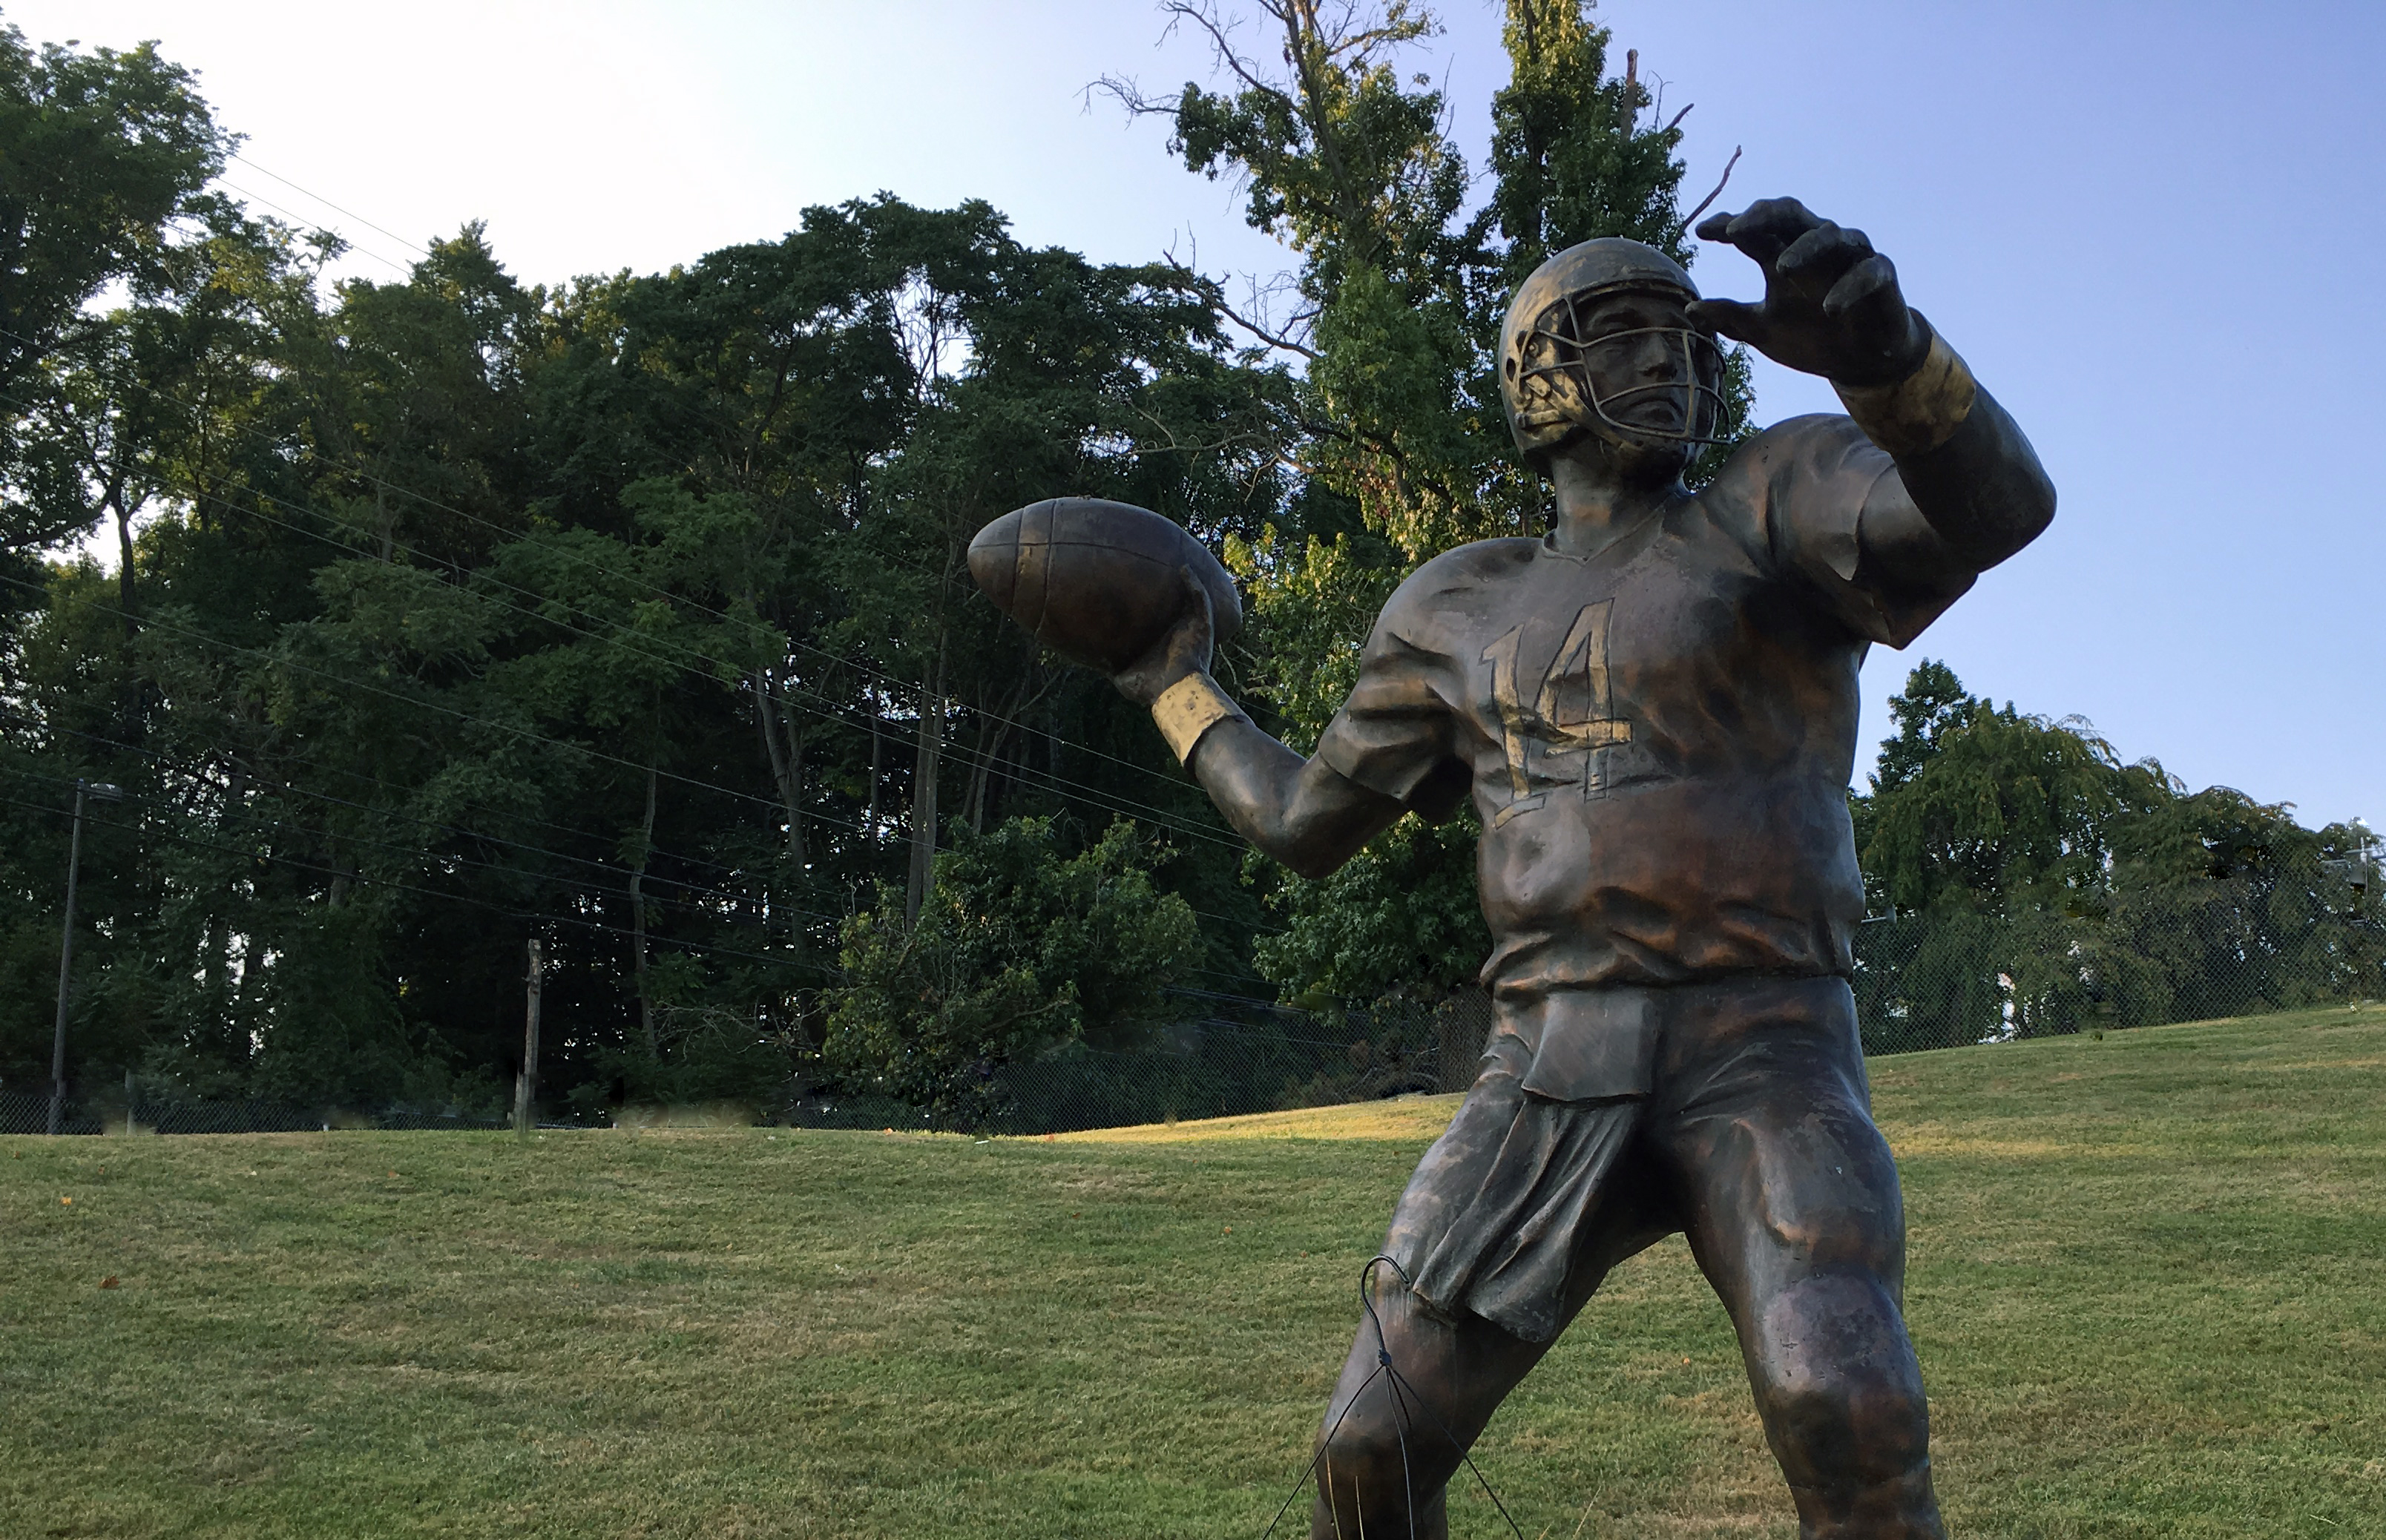 Statue of former West Chester University quarterback a tangible local reminder of 9/11 tragedy